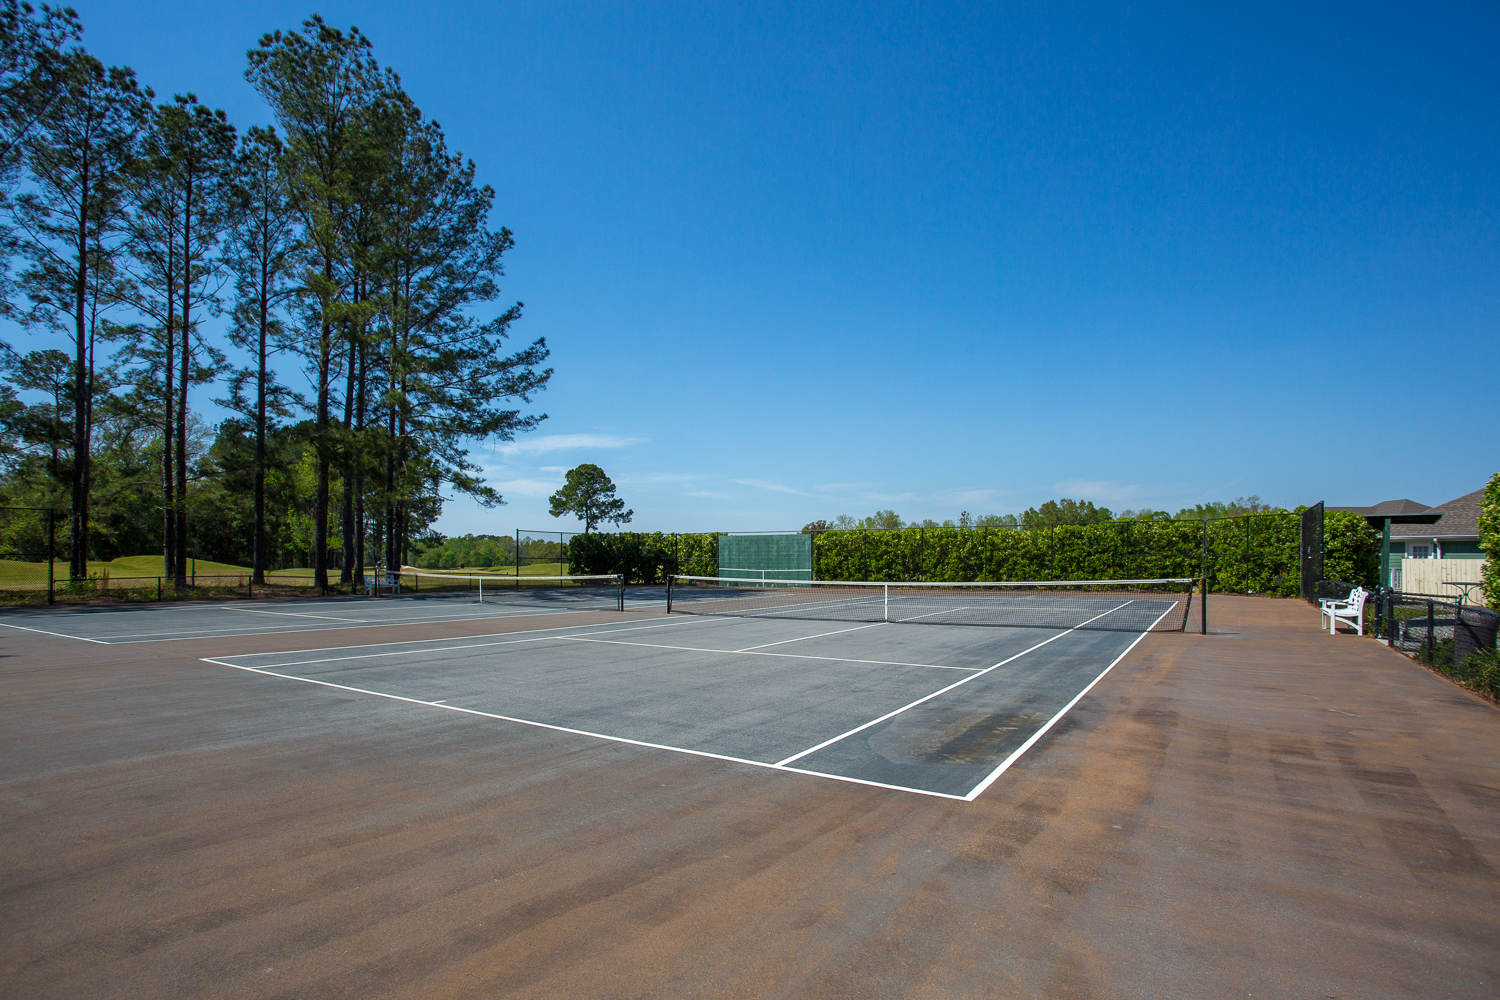 valdosta tennis courts